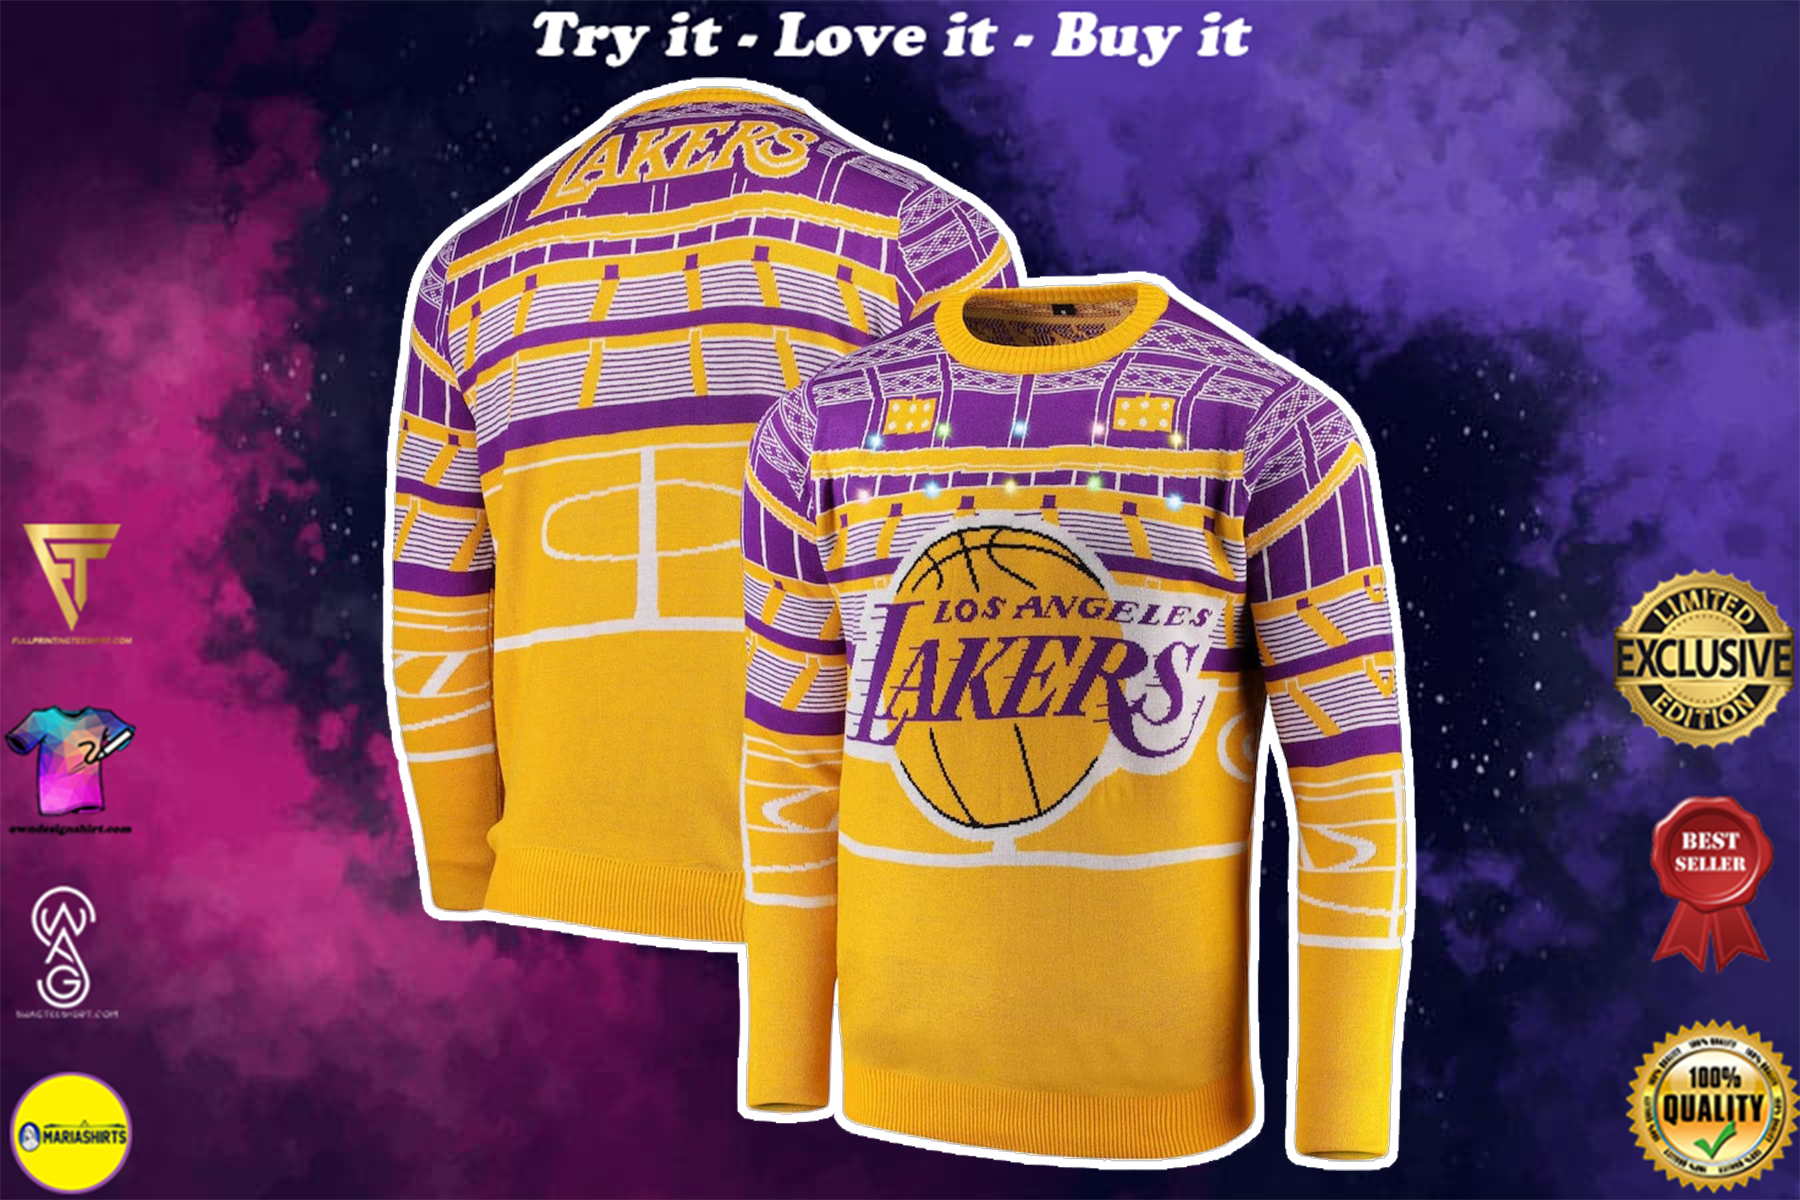 los angeles lakers champions all over printed ugly christmas sweater 2 - Copy (2)